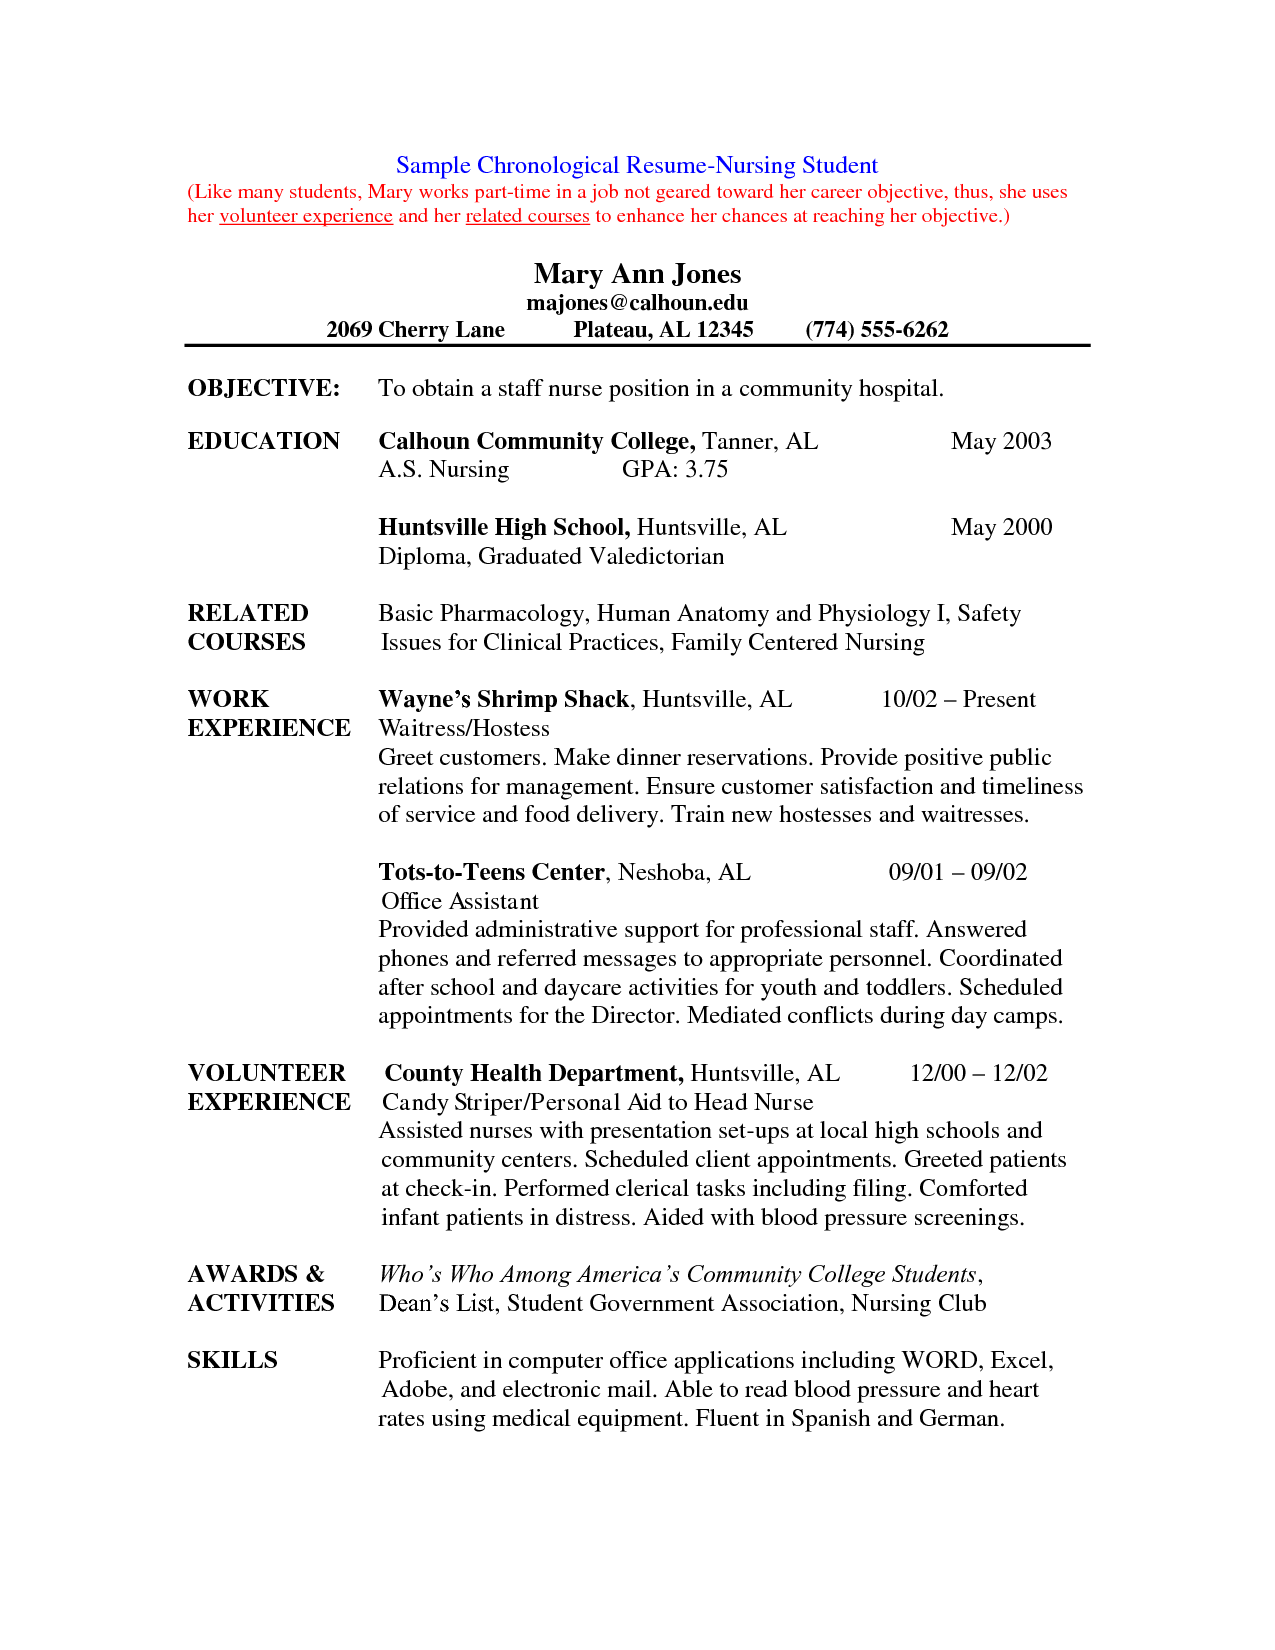 college application resume volunteer experience example